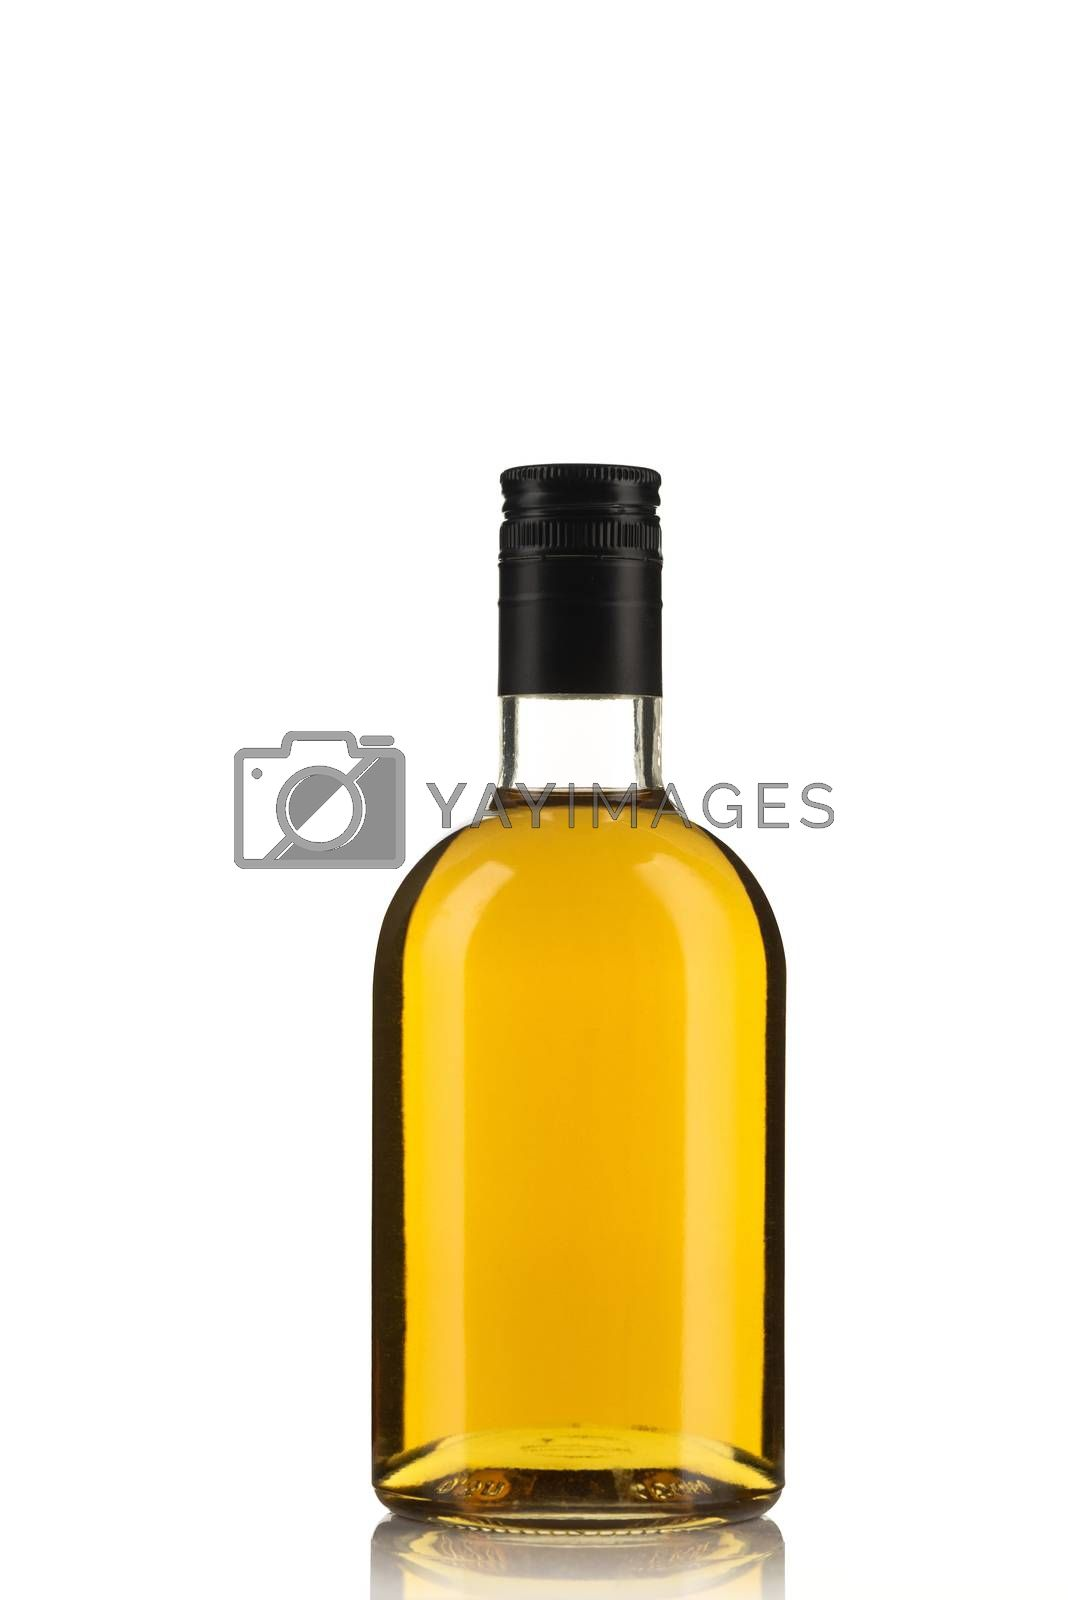 Bottle of Herbal Tincture or Alcohol Liqour Isolated on White Background.